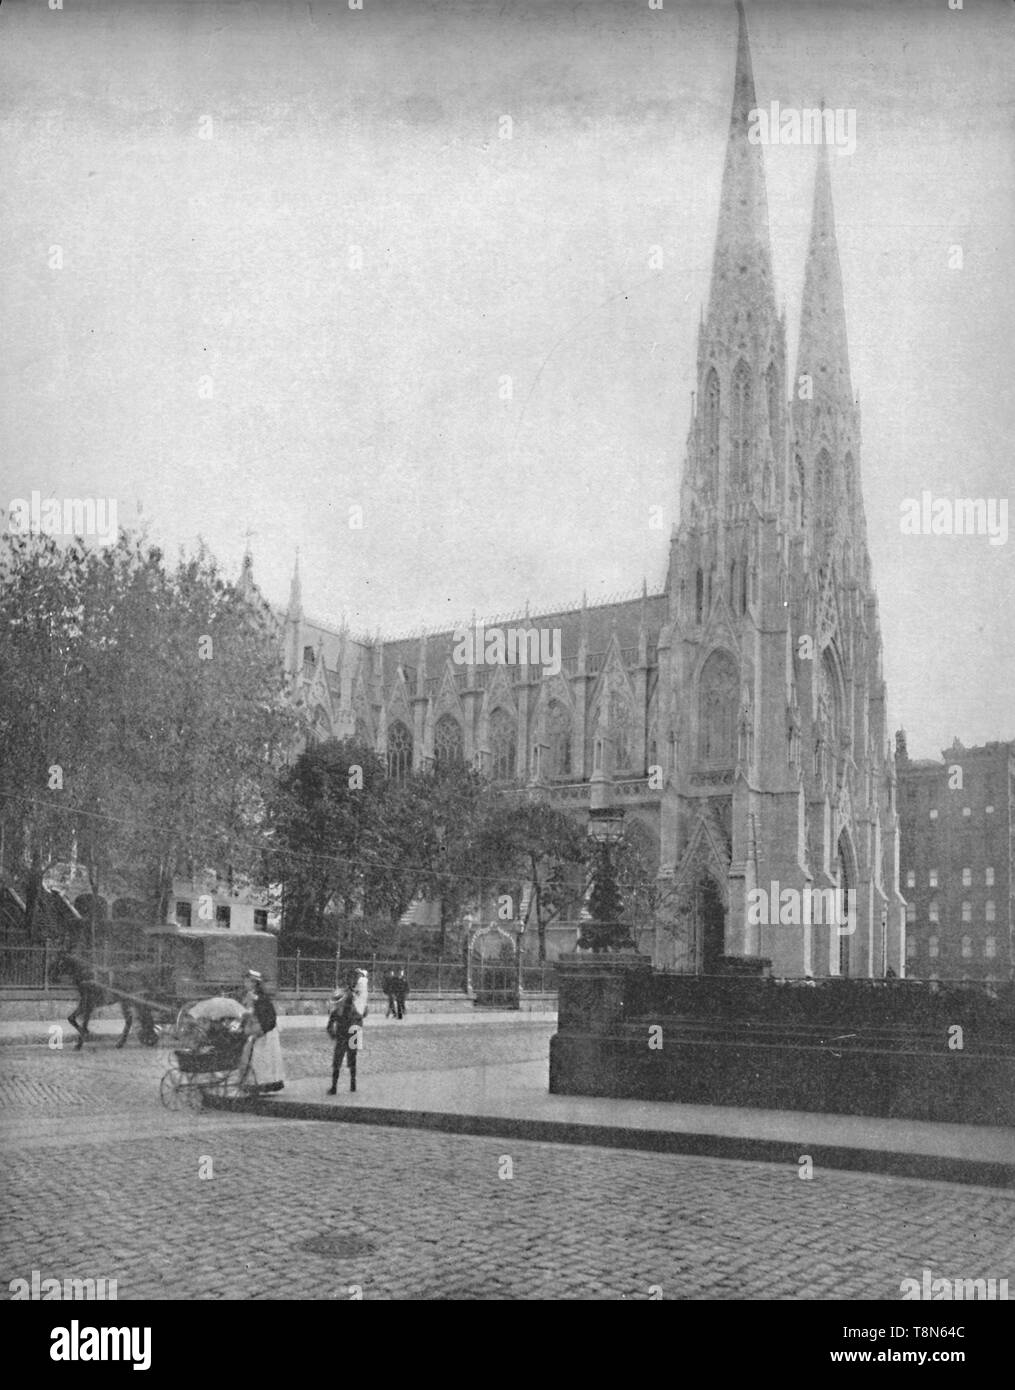 """'St. Patrick's Cathedral, New York City', c1897. Neo-Gothic Roman Catholic cathedral church and landmark on 5th Avenue in New York City, designed by James Renwick Jr. The land on which the cathedral stands was purchased in 1810. From """"A Tour Through the New World America"""", by Prof. Geo. R. Cromwell. [C. N. Greig & Co., London, c1897] - Stock Image"""